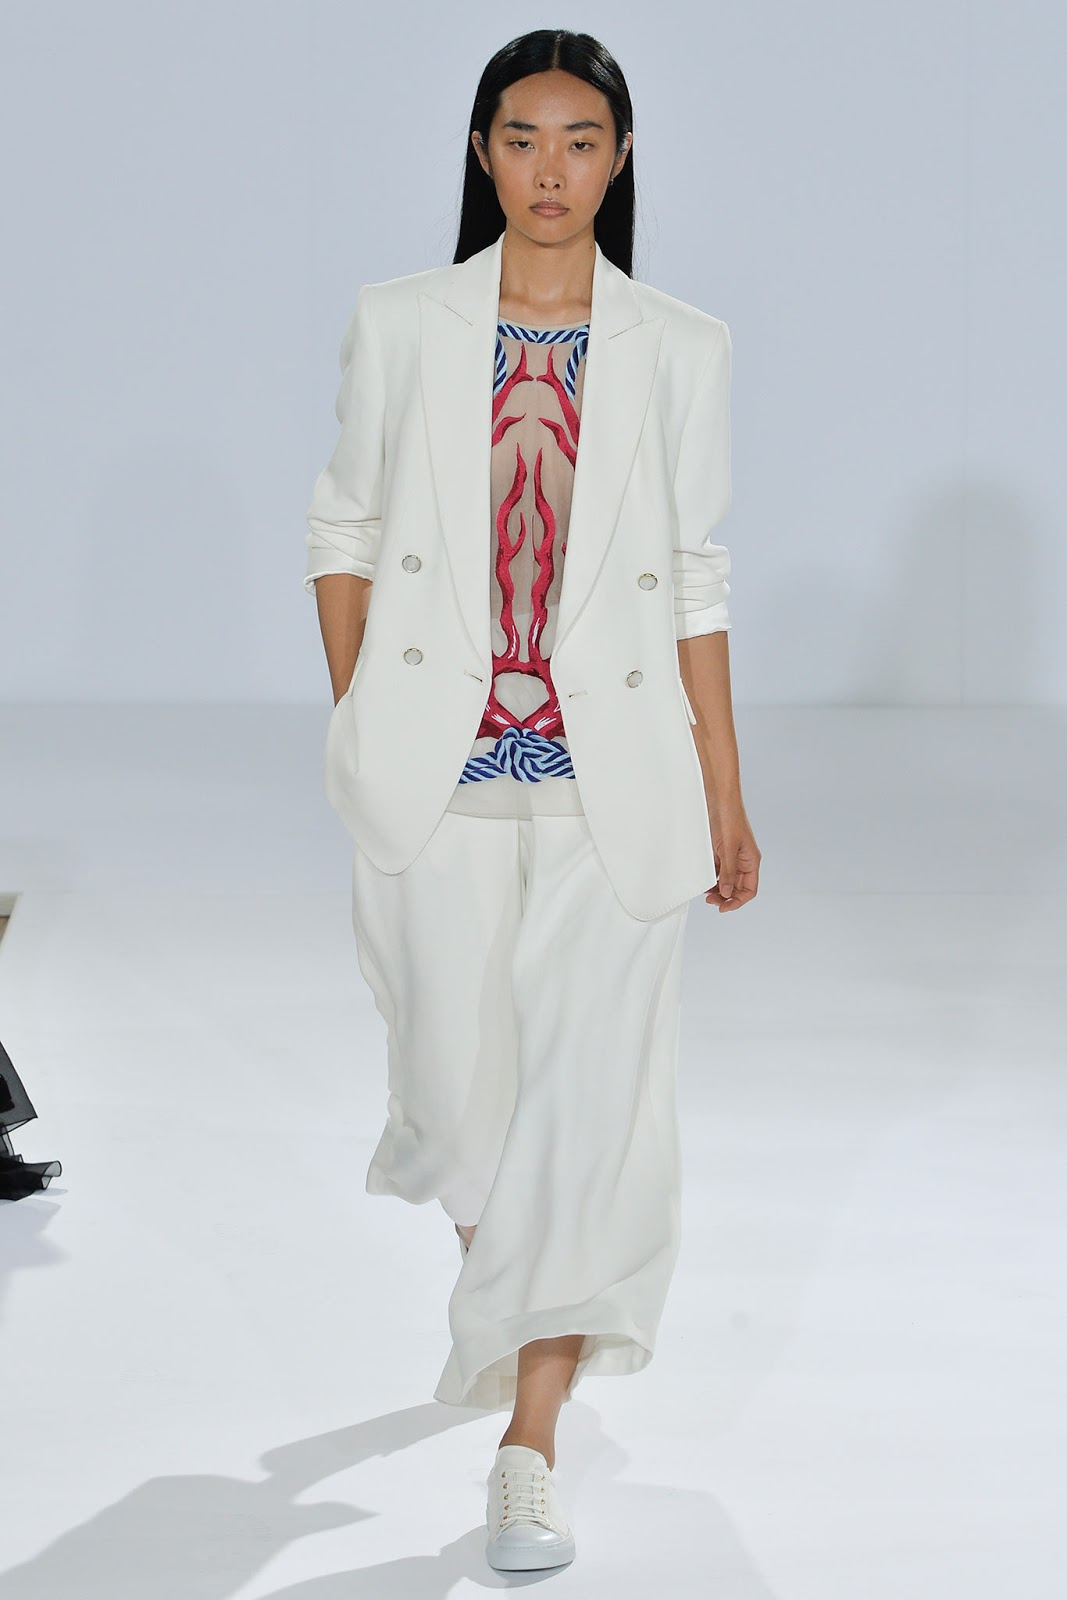 Three ways to style a summer suit as seen at Temperley Spring/Summer 2015 show. Style tips on how to wear a white suit / Spring/Sumemr 2015 trends / via fashioned by love british fashion blog